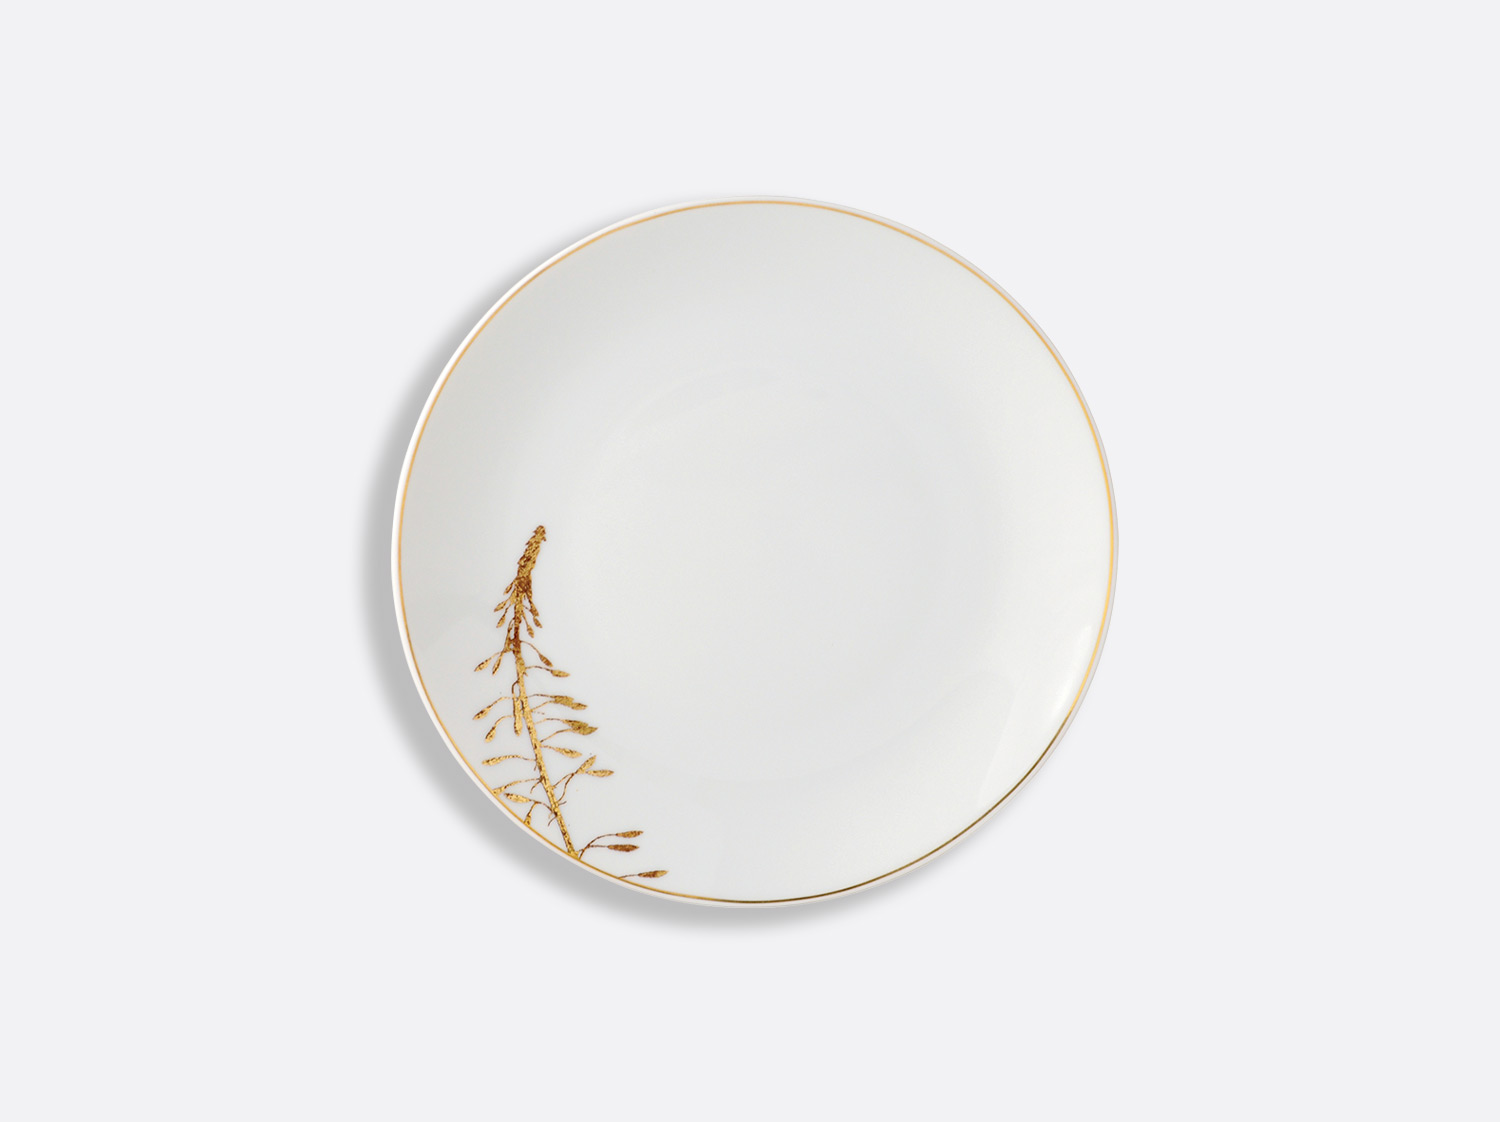 Assiette à pain 16 cm en porcelaine de la collection Vegetal or Bernardaud